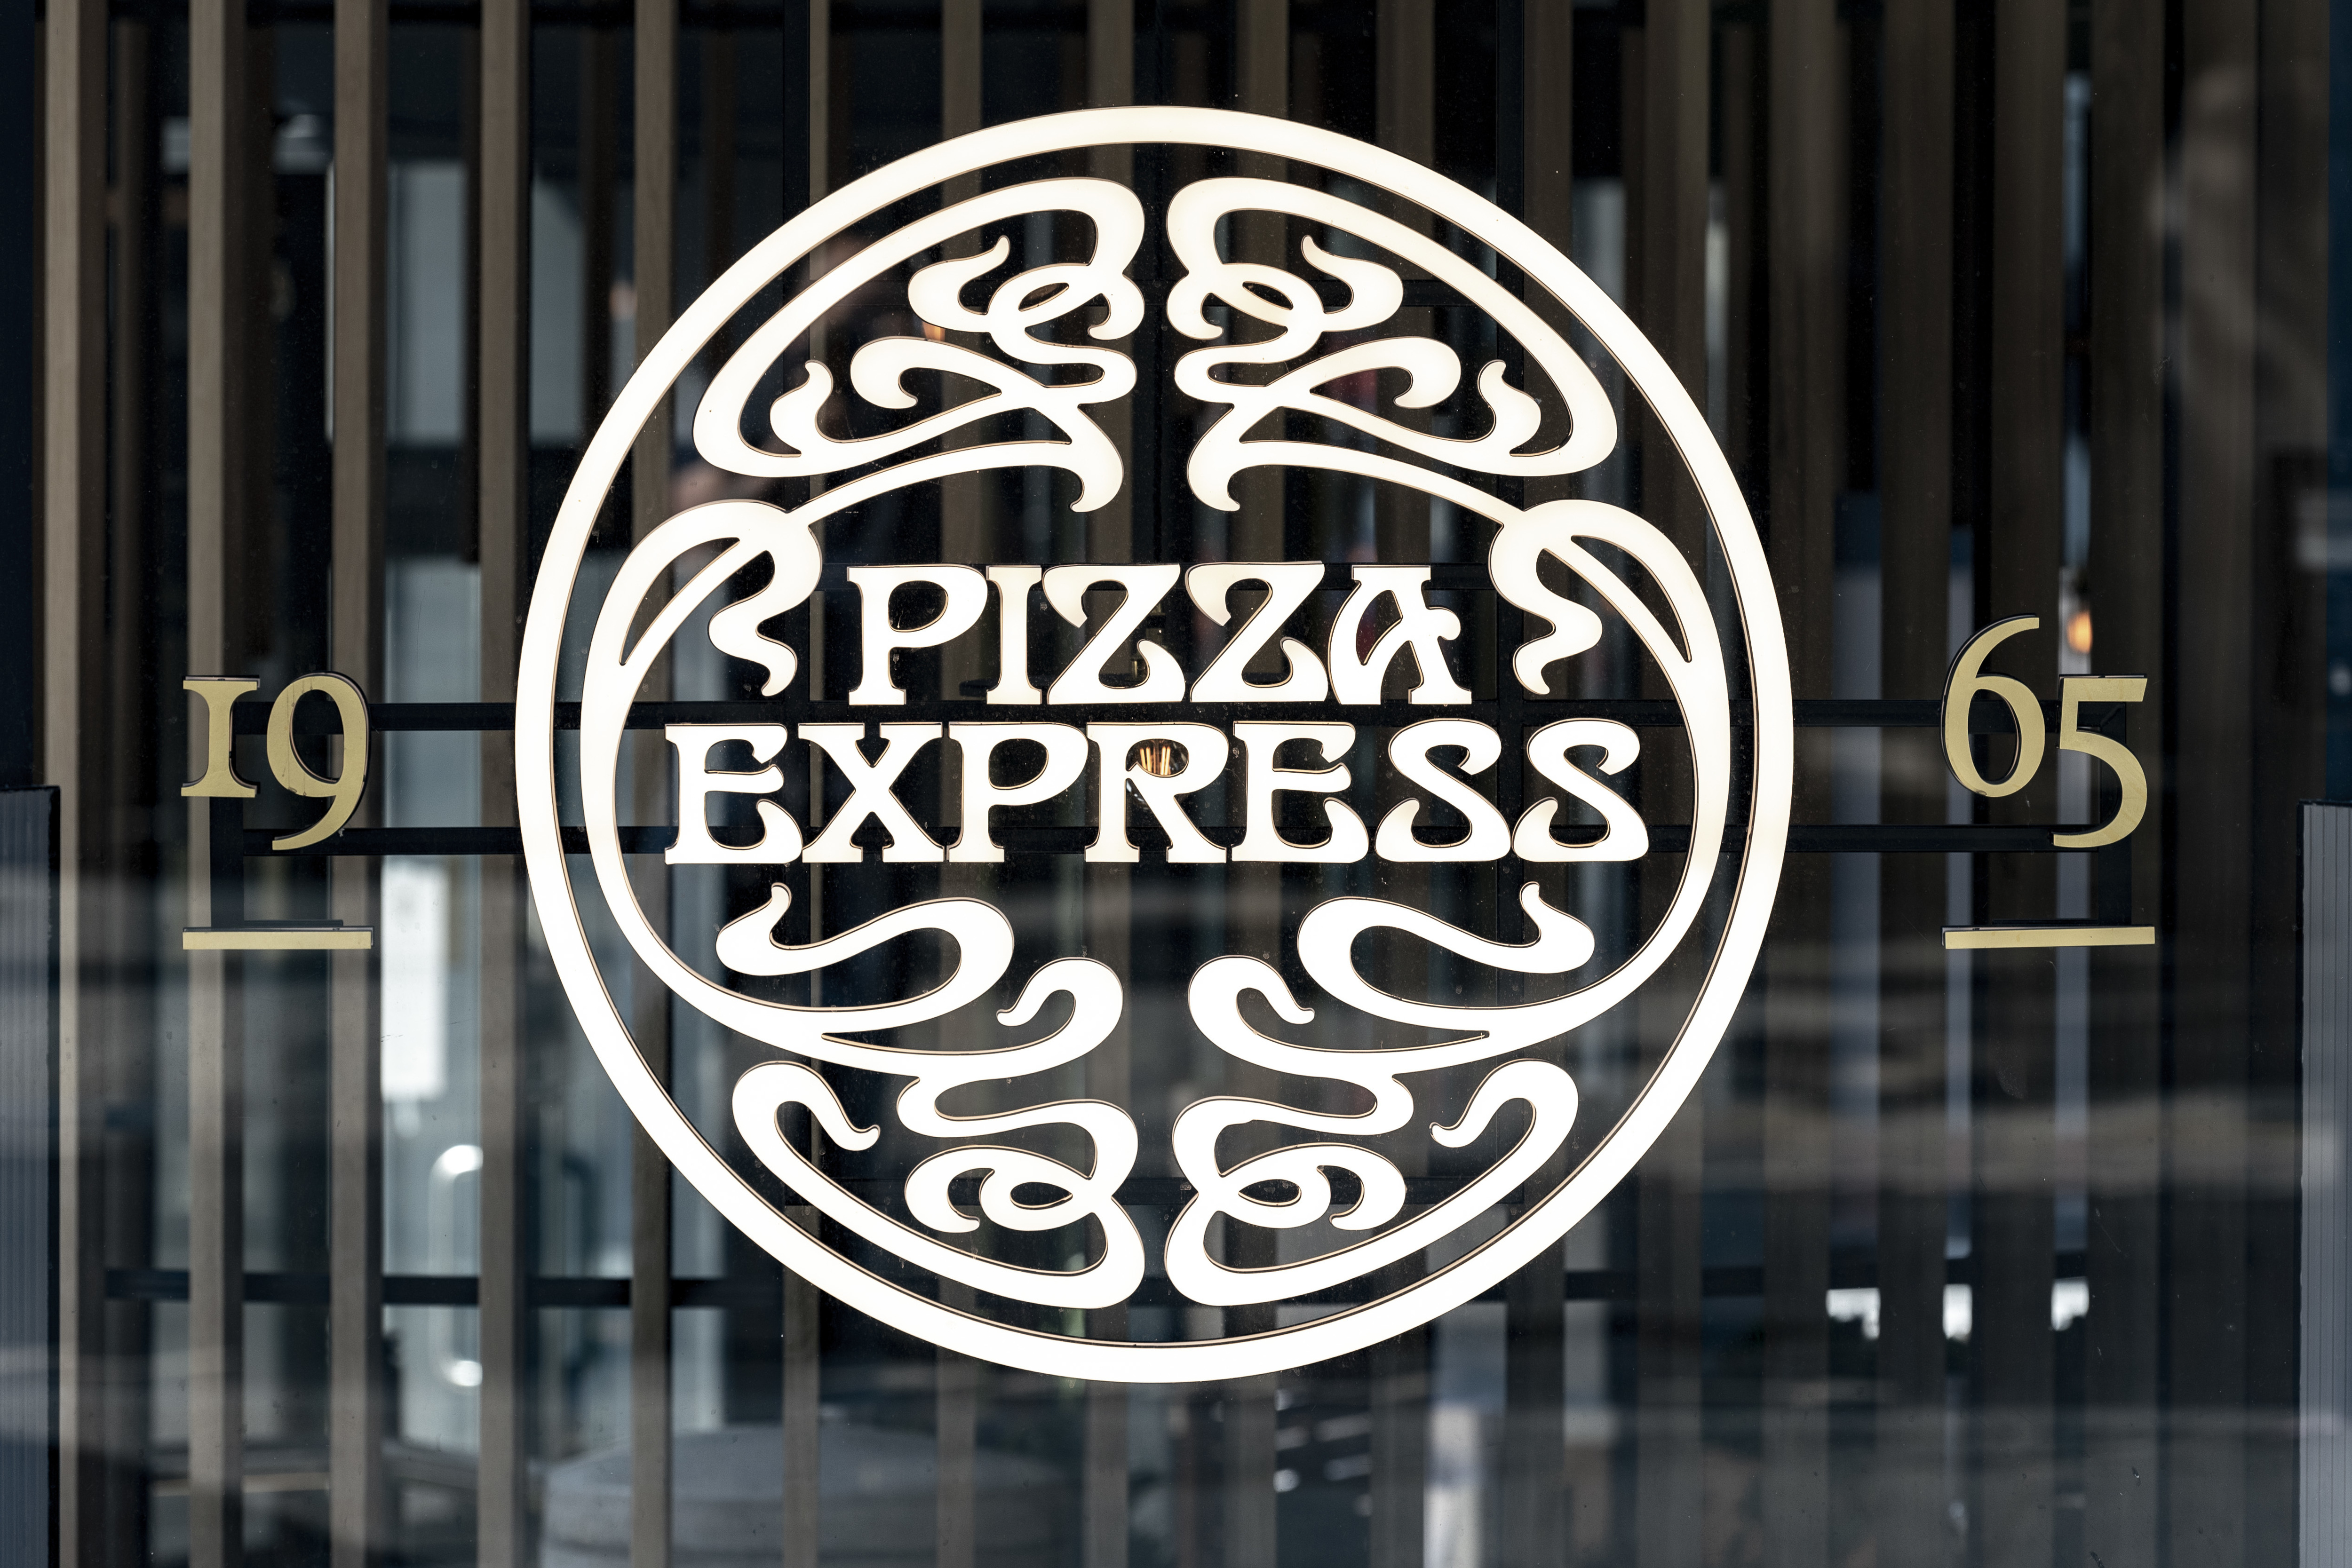 Pizza Express logo in a window on their restaurant in the U.K.